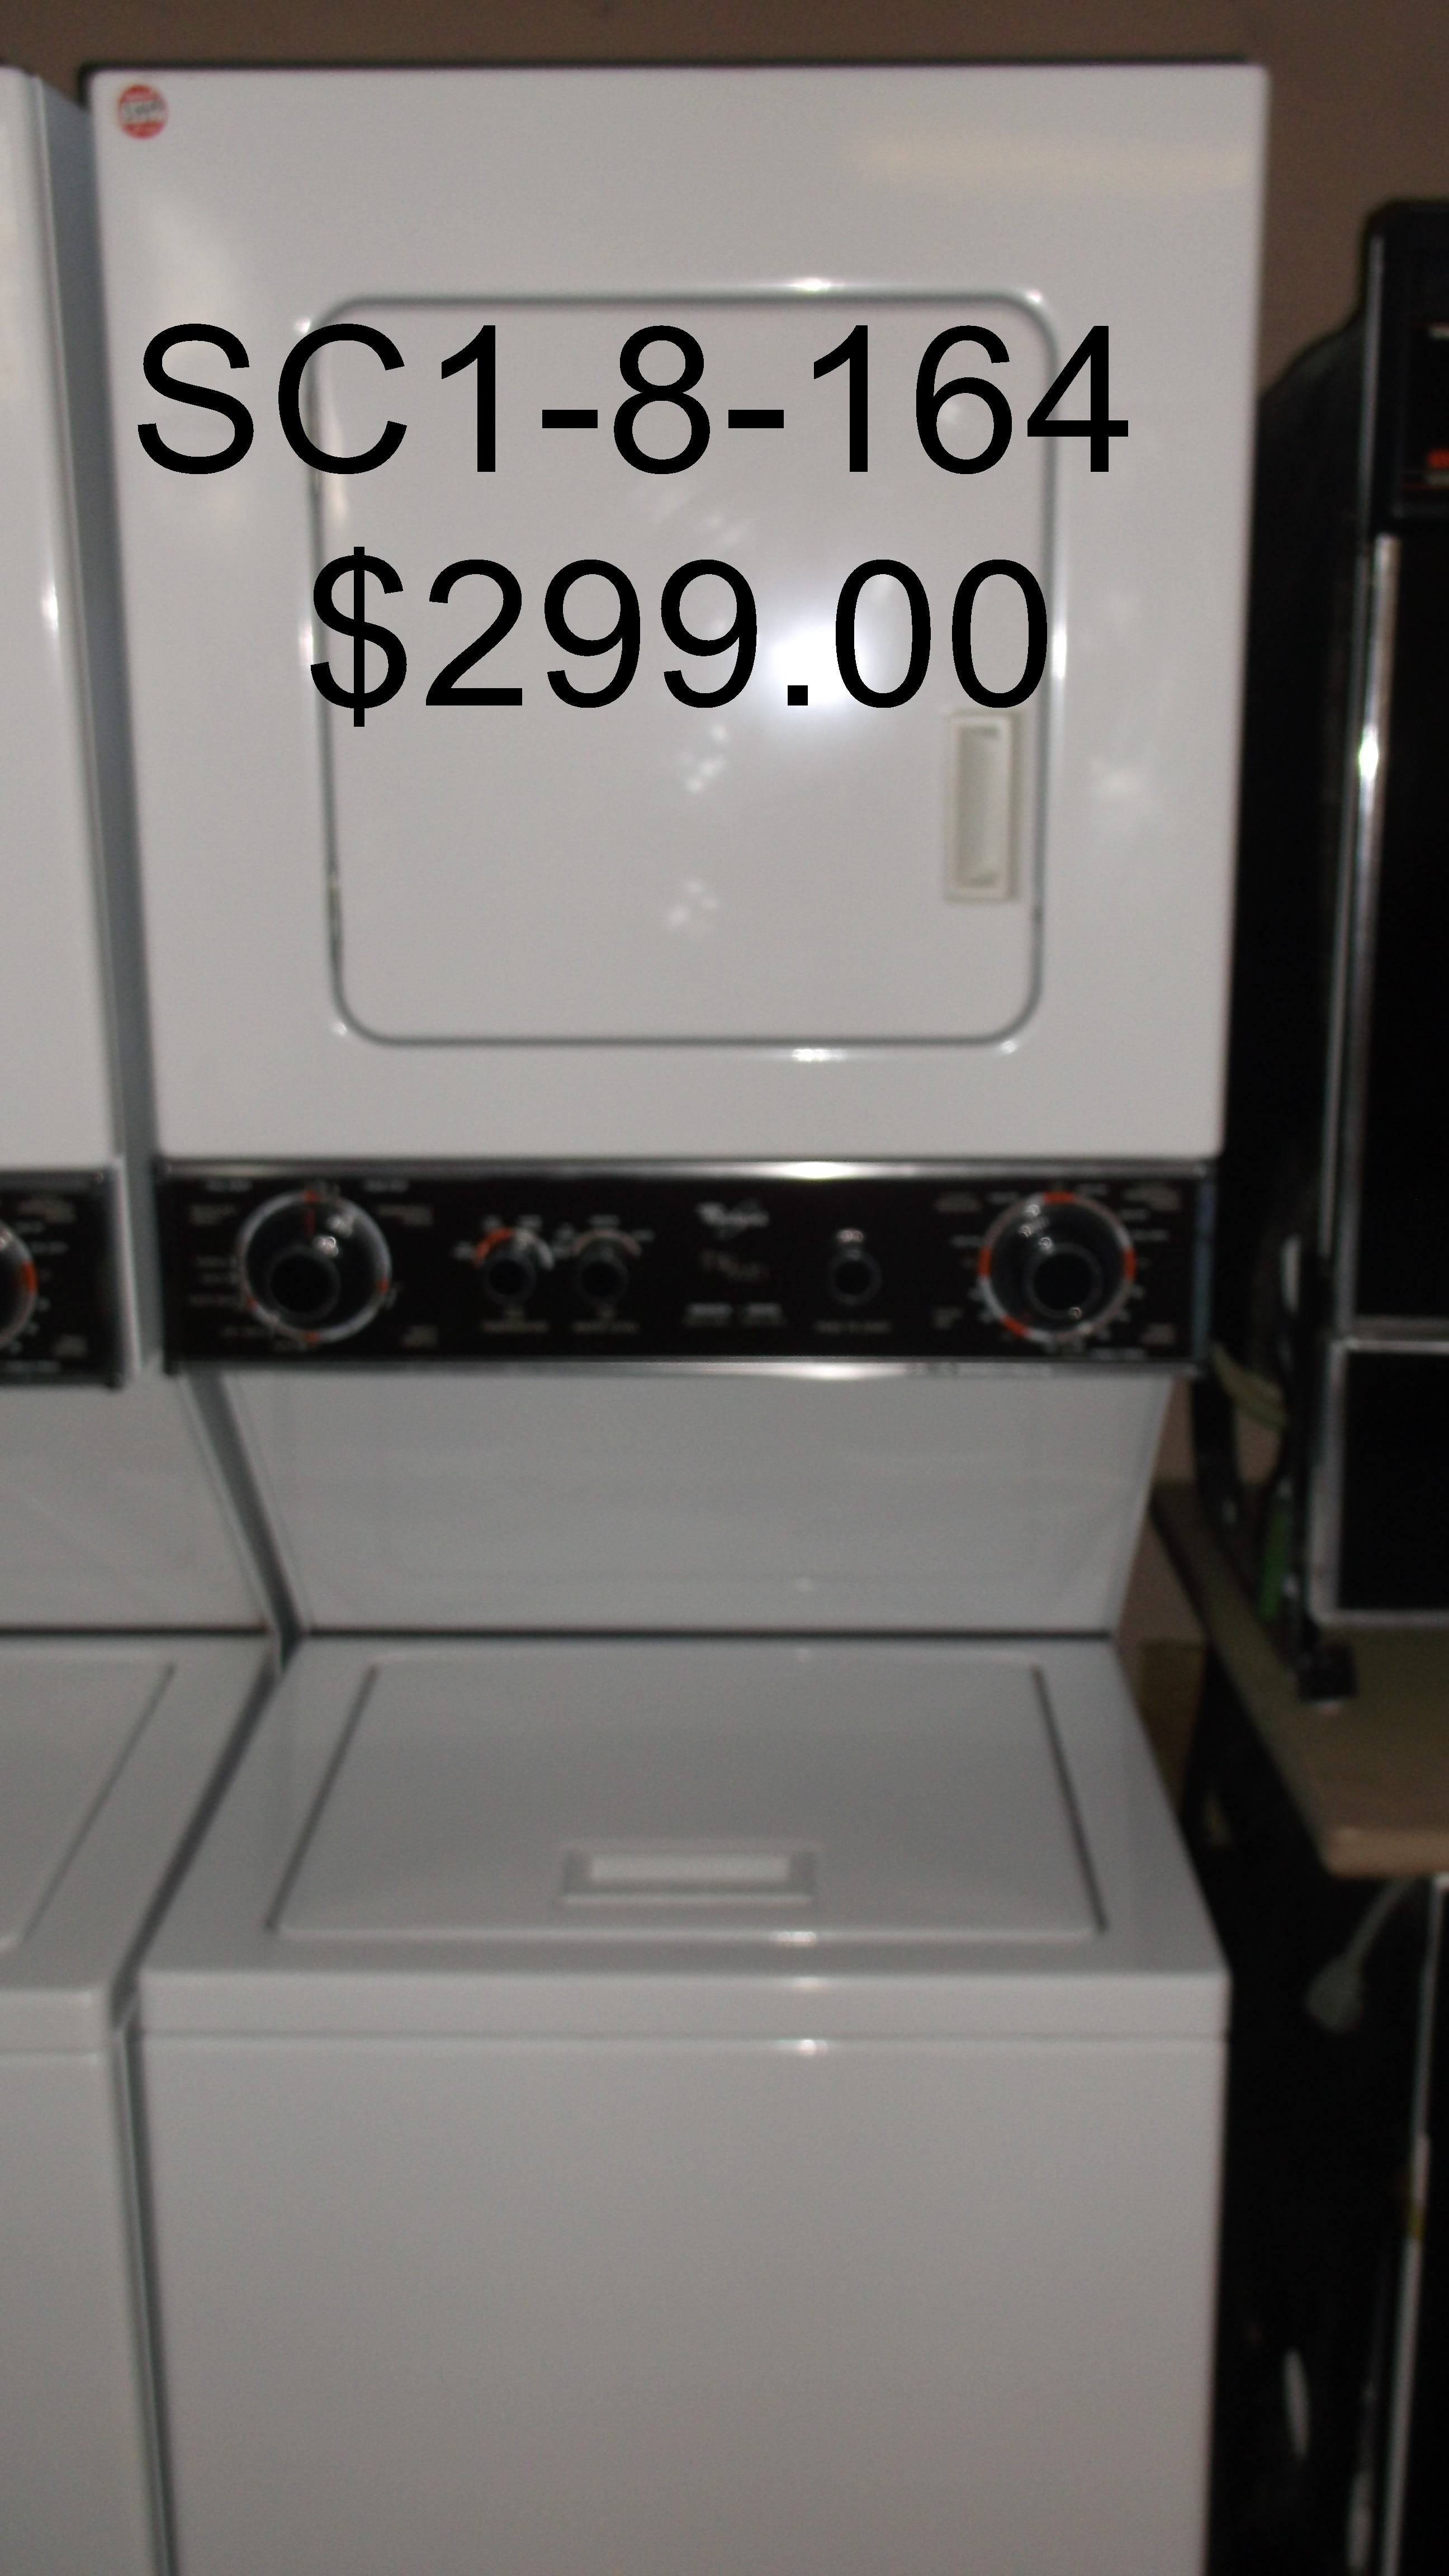 Small Appliance Sales Used Appliance Sales Second Chance Thrift Stores Stockton Ca